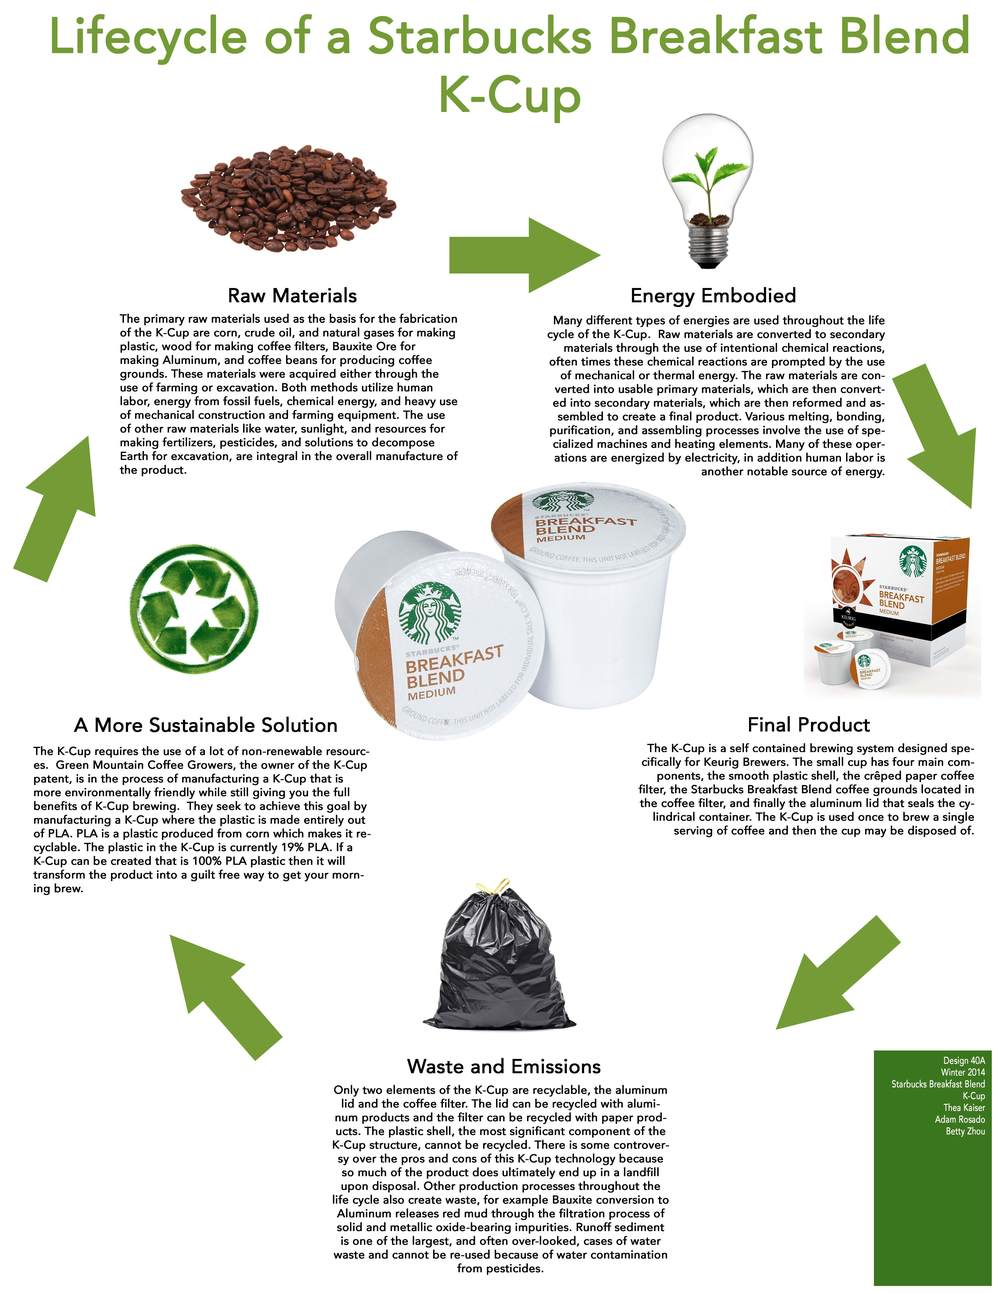 starbucks product life cycle essay Starbucks employs professionals in many different fields, including finance, information technology, marketing, retail operations, store design, supply chain management and more  corporate careers an opportunity for everyone  and make adjustments until the product is ready to take to market.